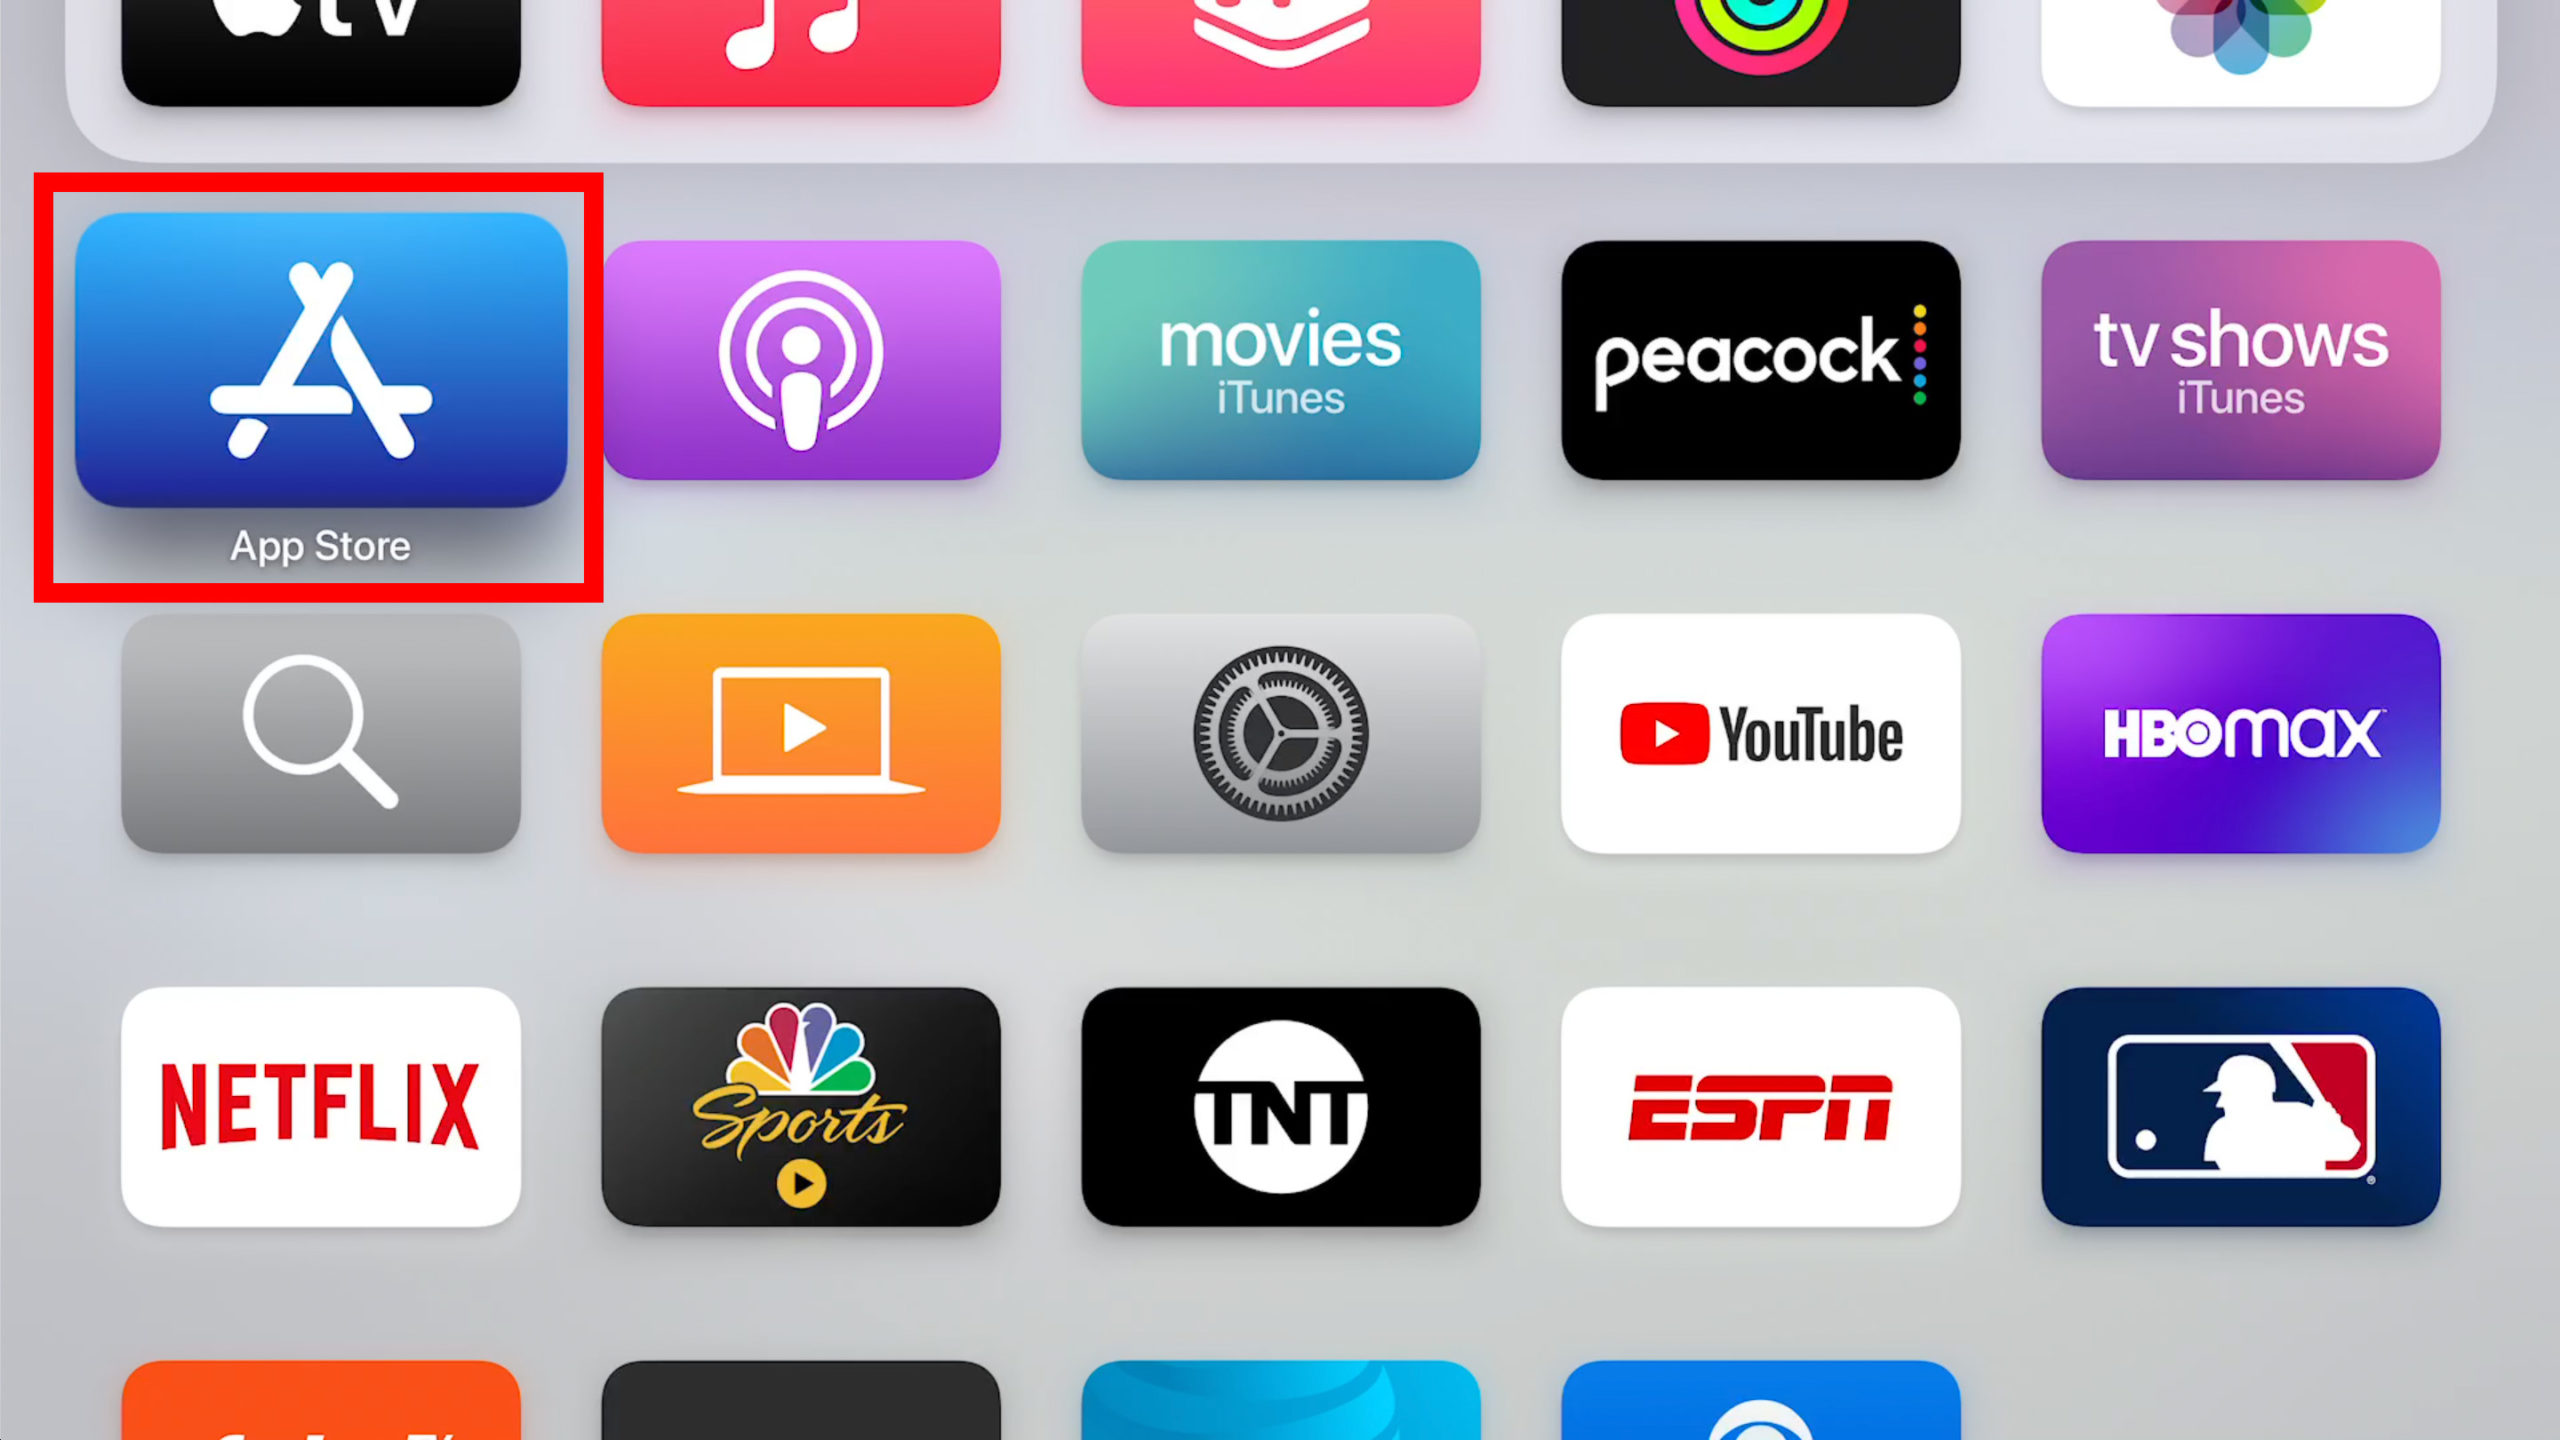 How to Manually Update Apple TV Apps